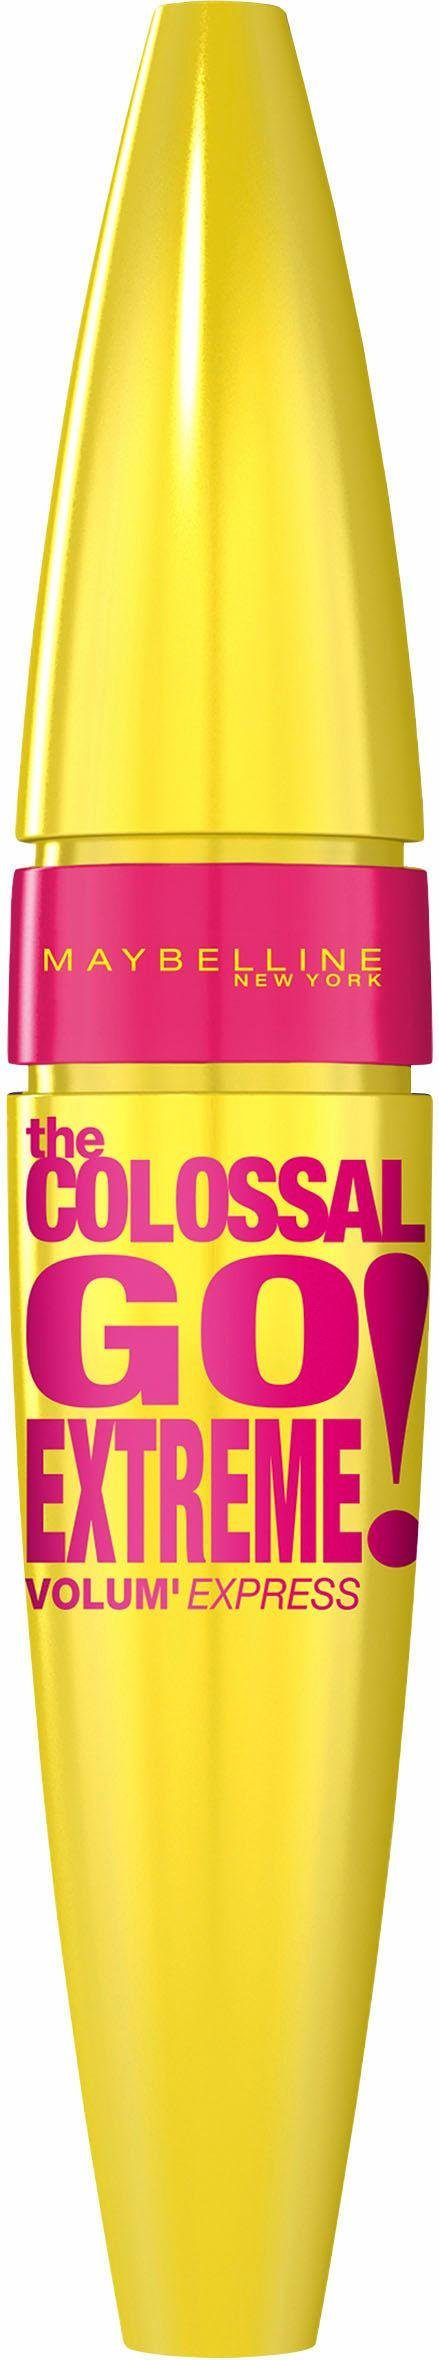 Maybelline New York, »Mascara VEX Colossal Go Extreme«, Mascara